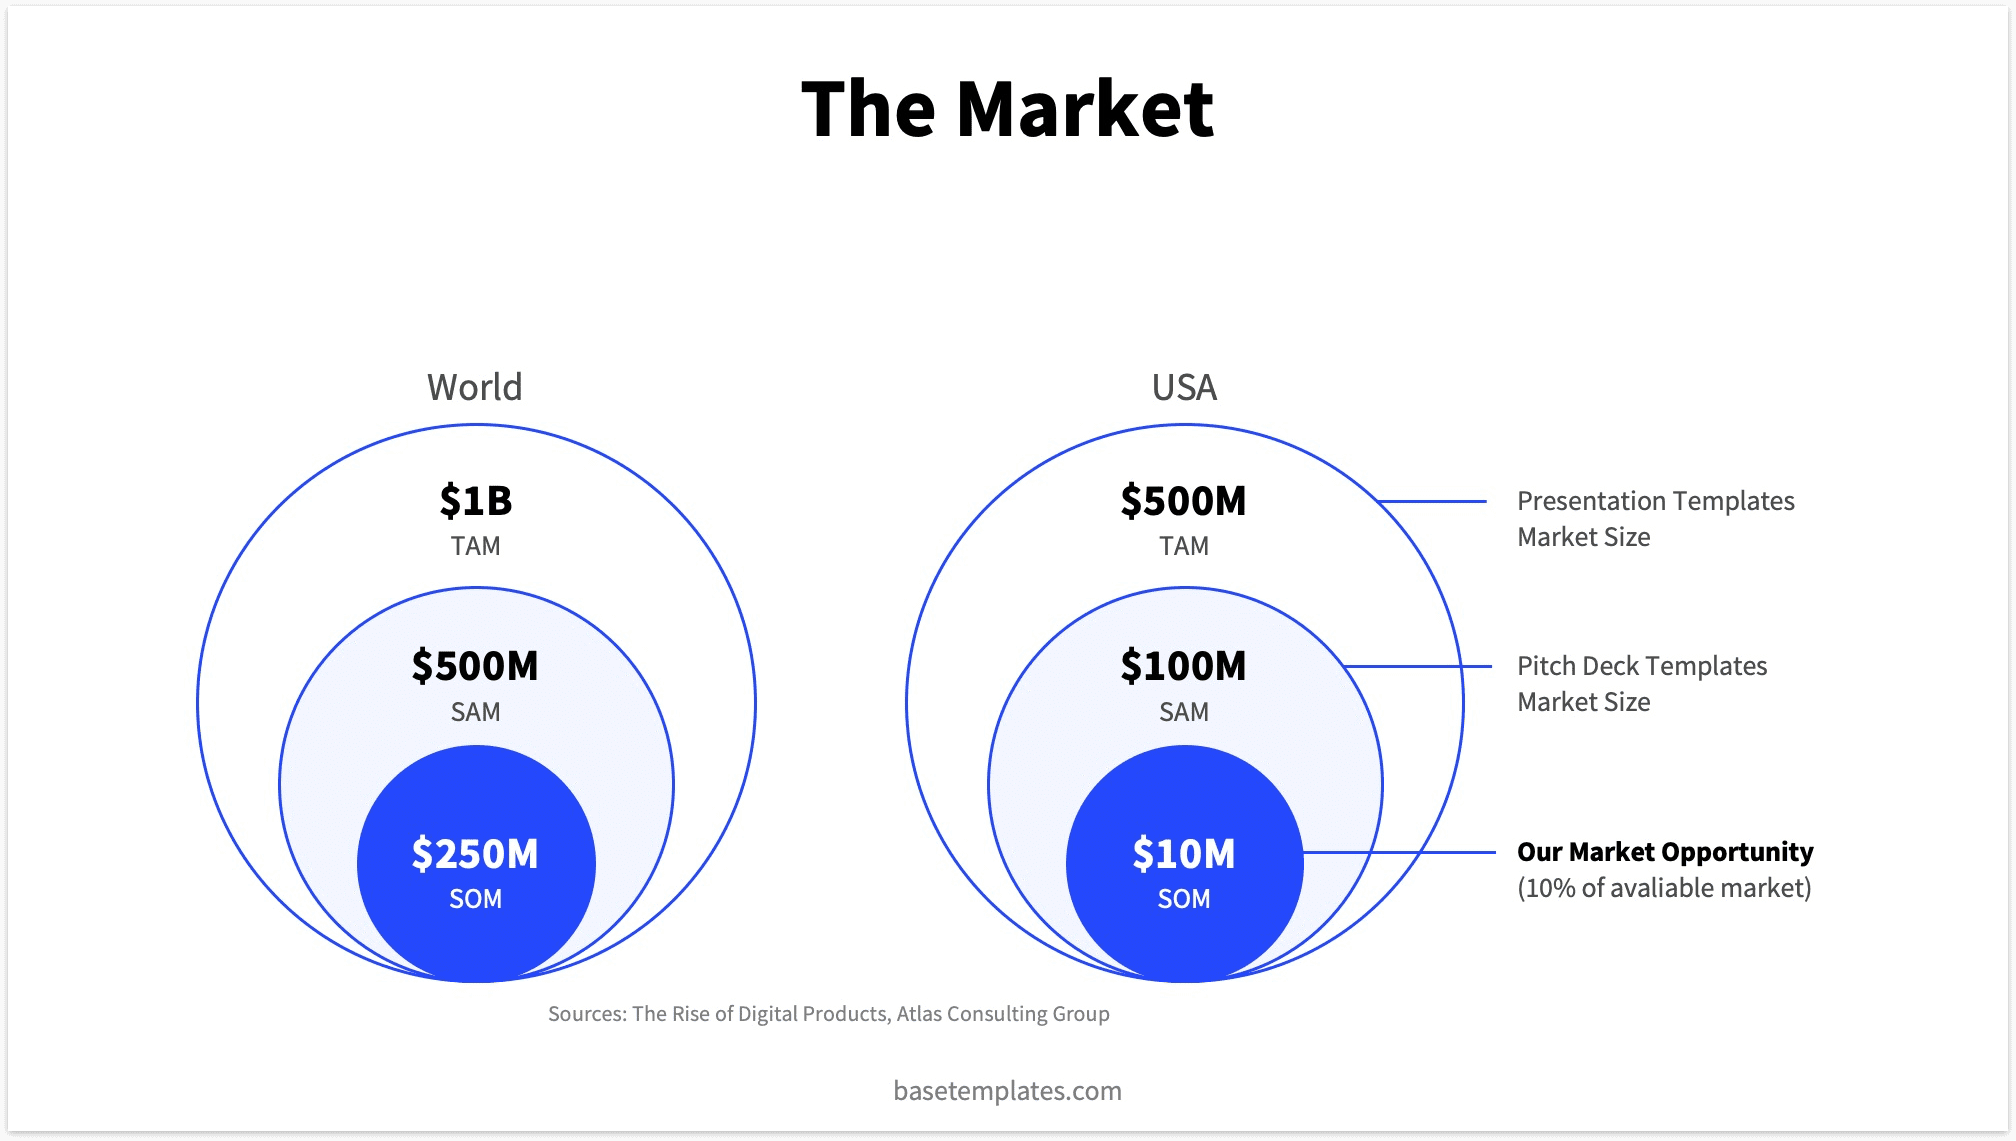 Classical market slide design with venn diagram style